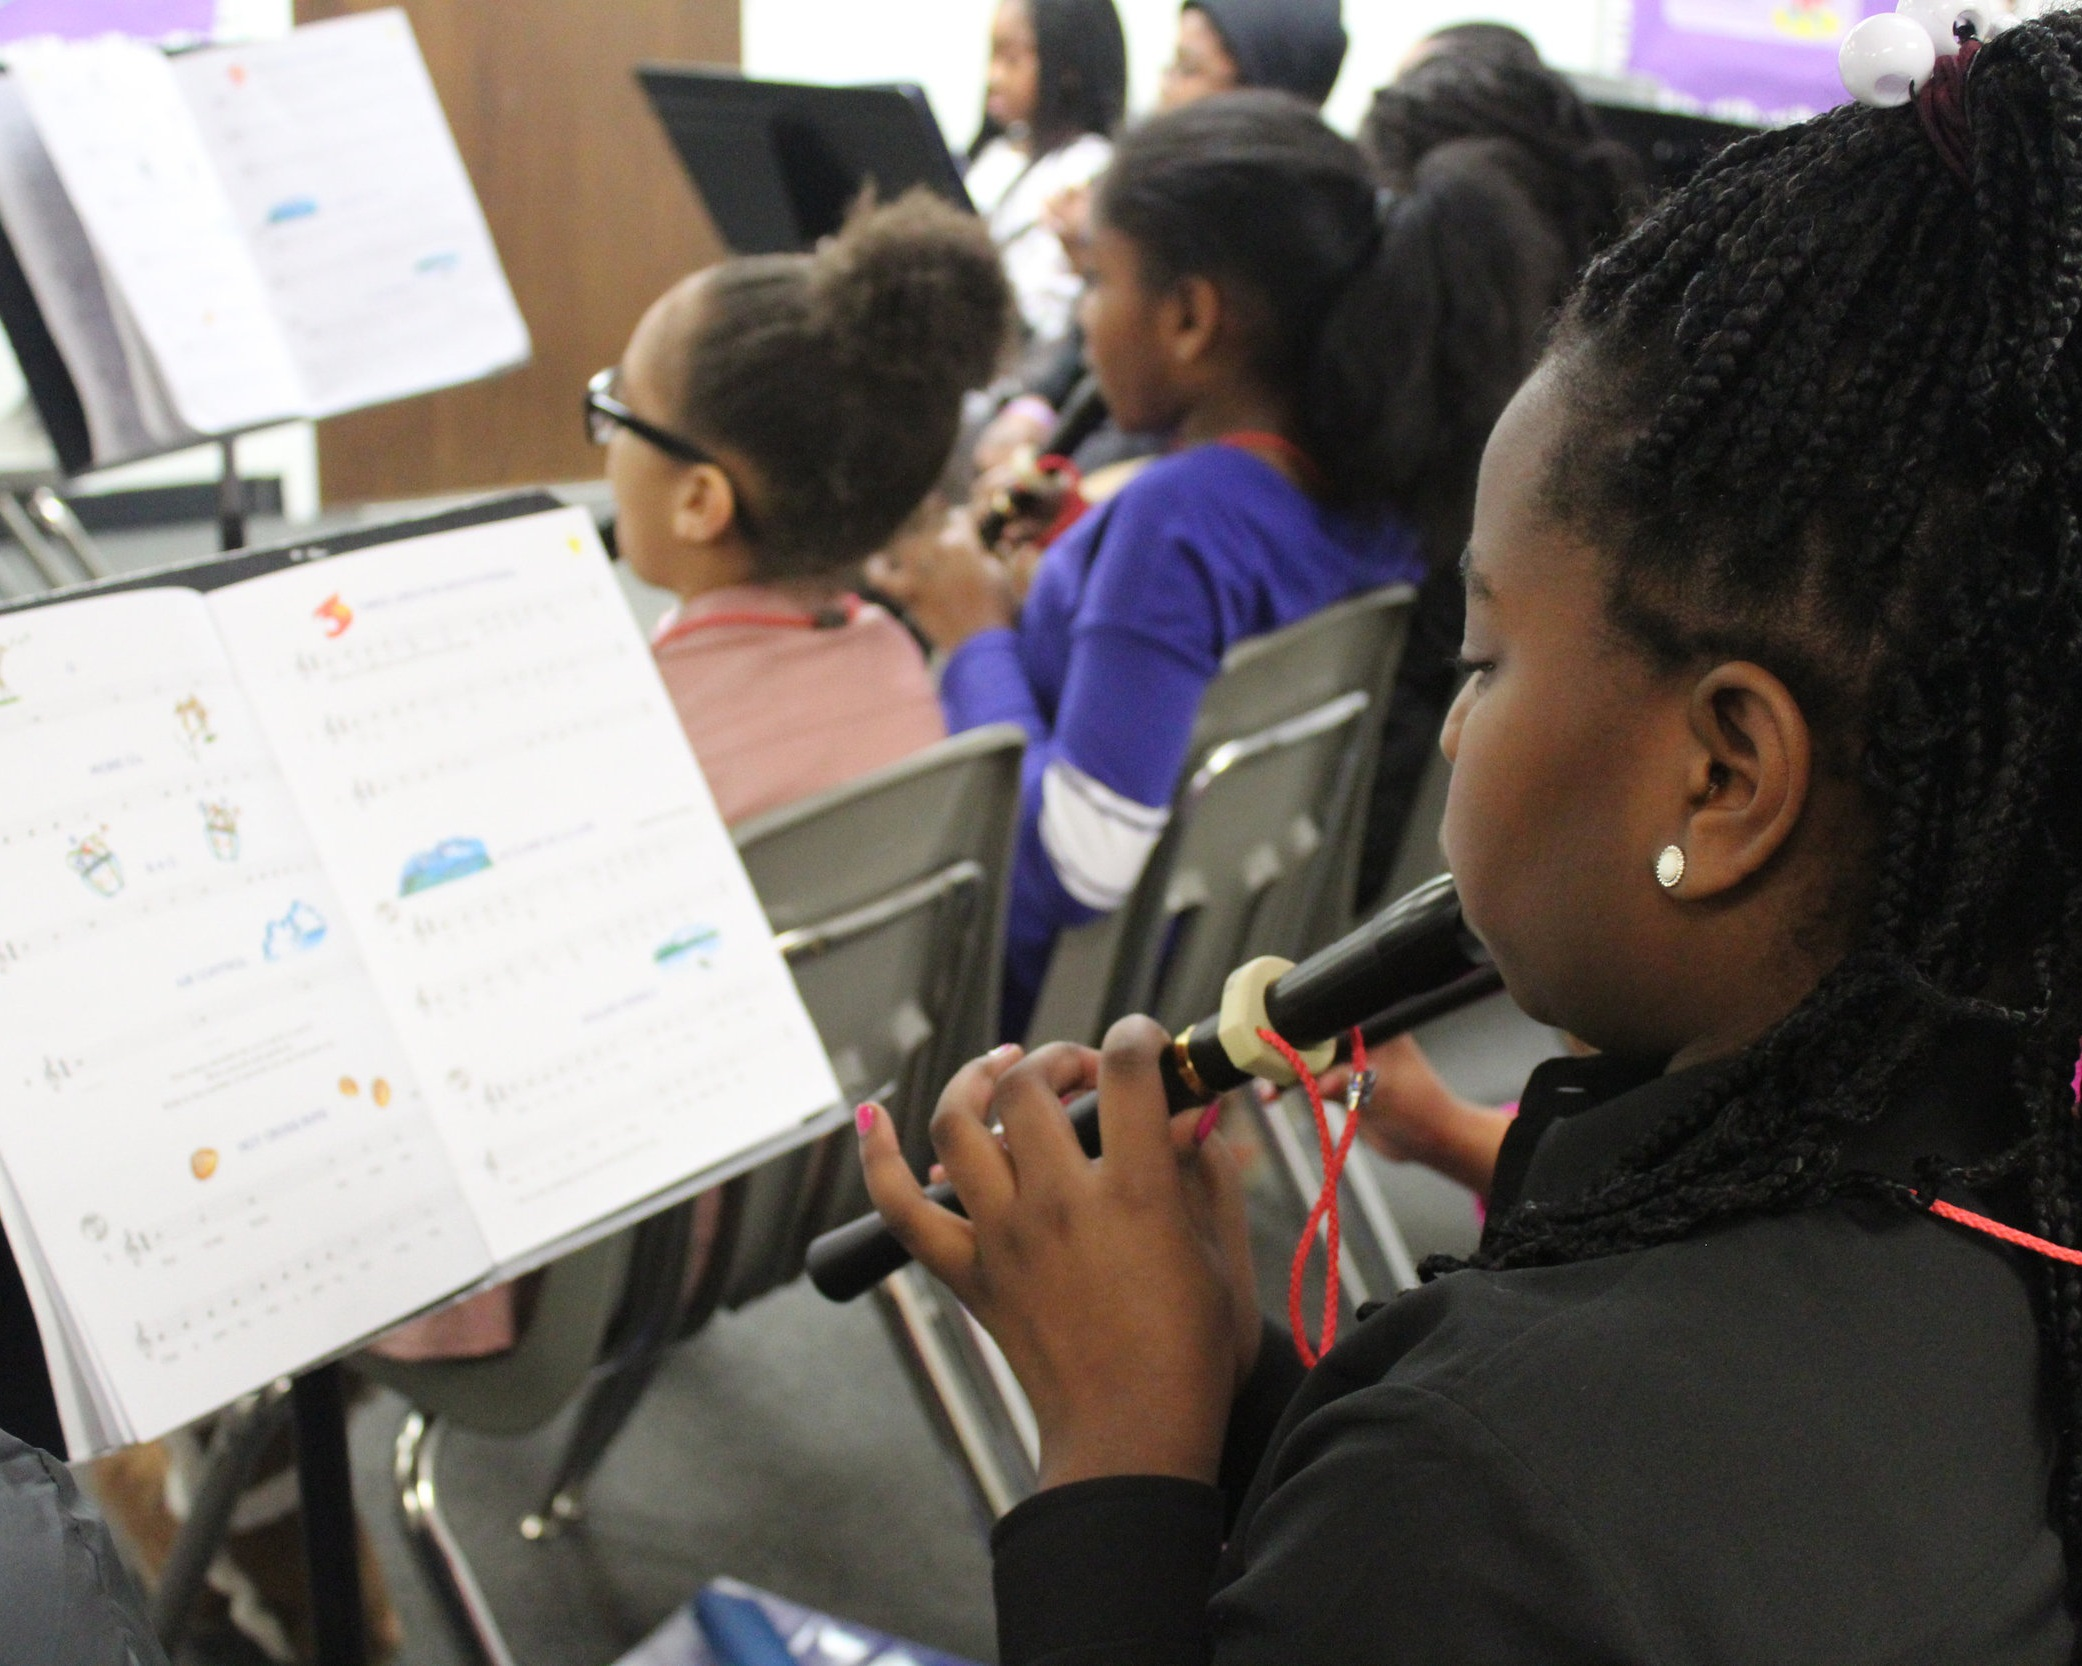 Musical Arts - Lower School students participate in music classes twice weekly and learn the basics of music through singing, a variety of musical instruments including percussion instruments. Fourth graders begin to learn the recorder and our fifth graders lead our weekly chapel worship time each week, providing a strong musical foundation for the future.